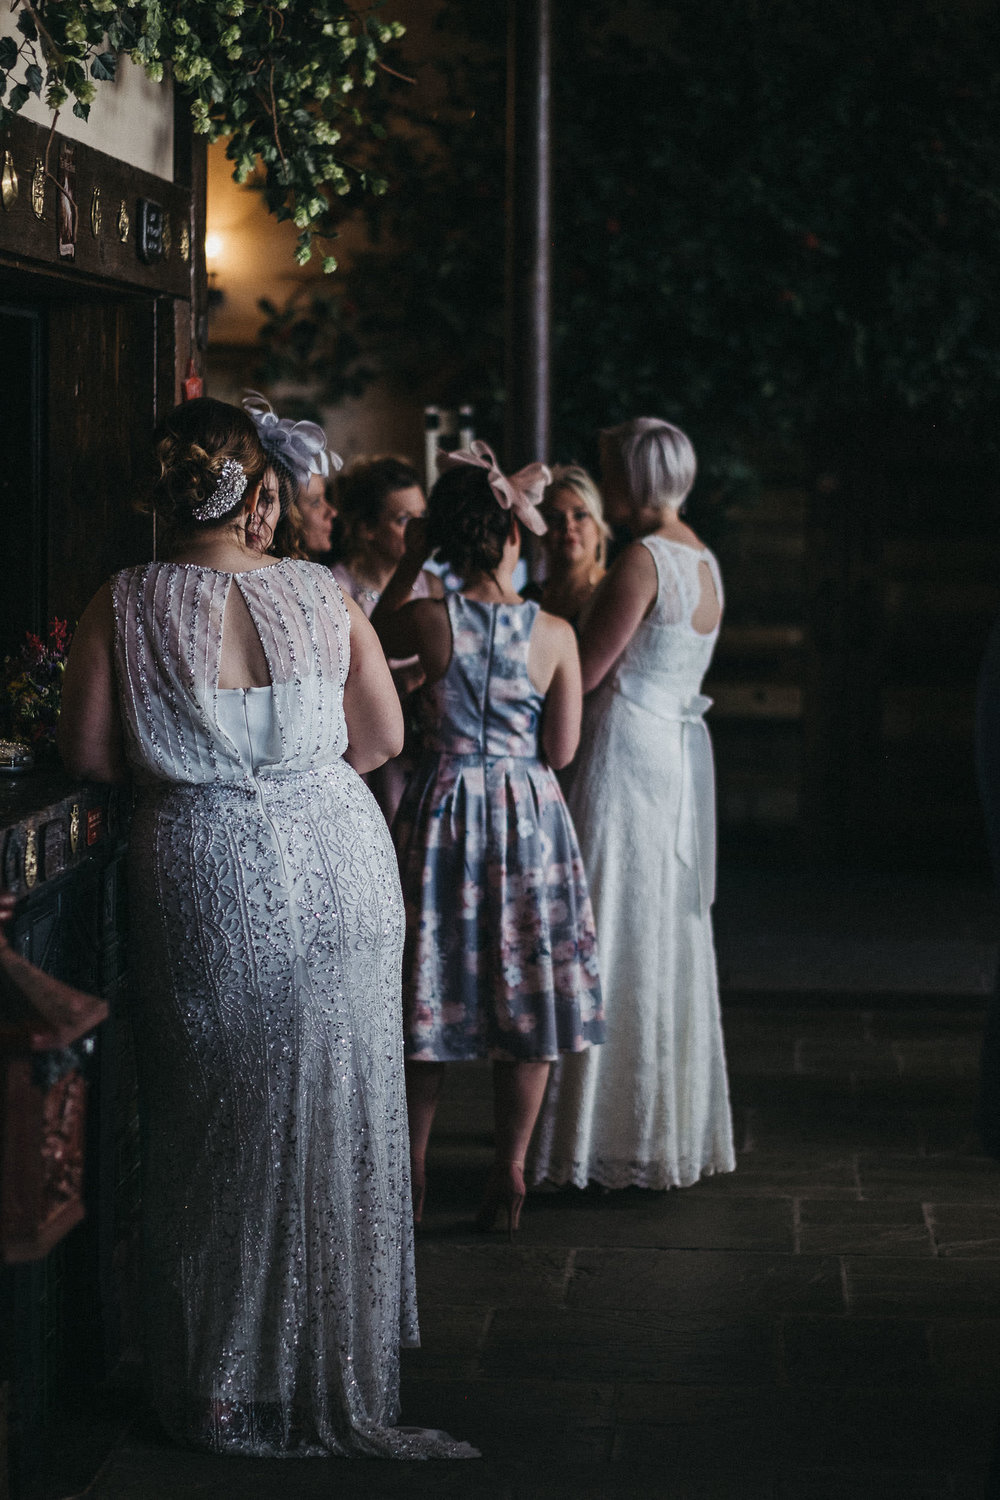 One bride watches the other bride while leaning against bar